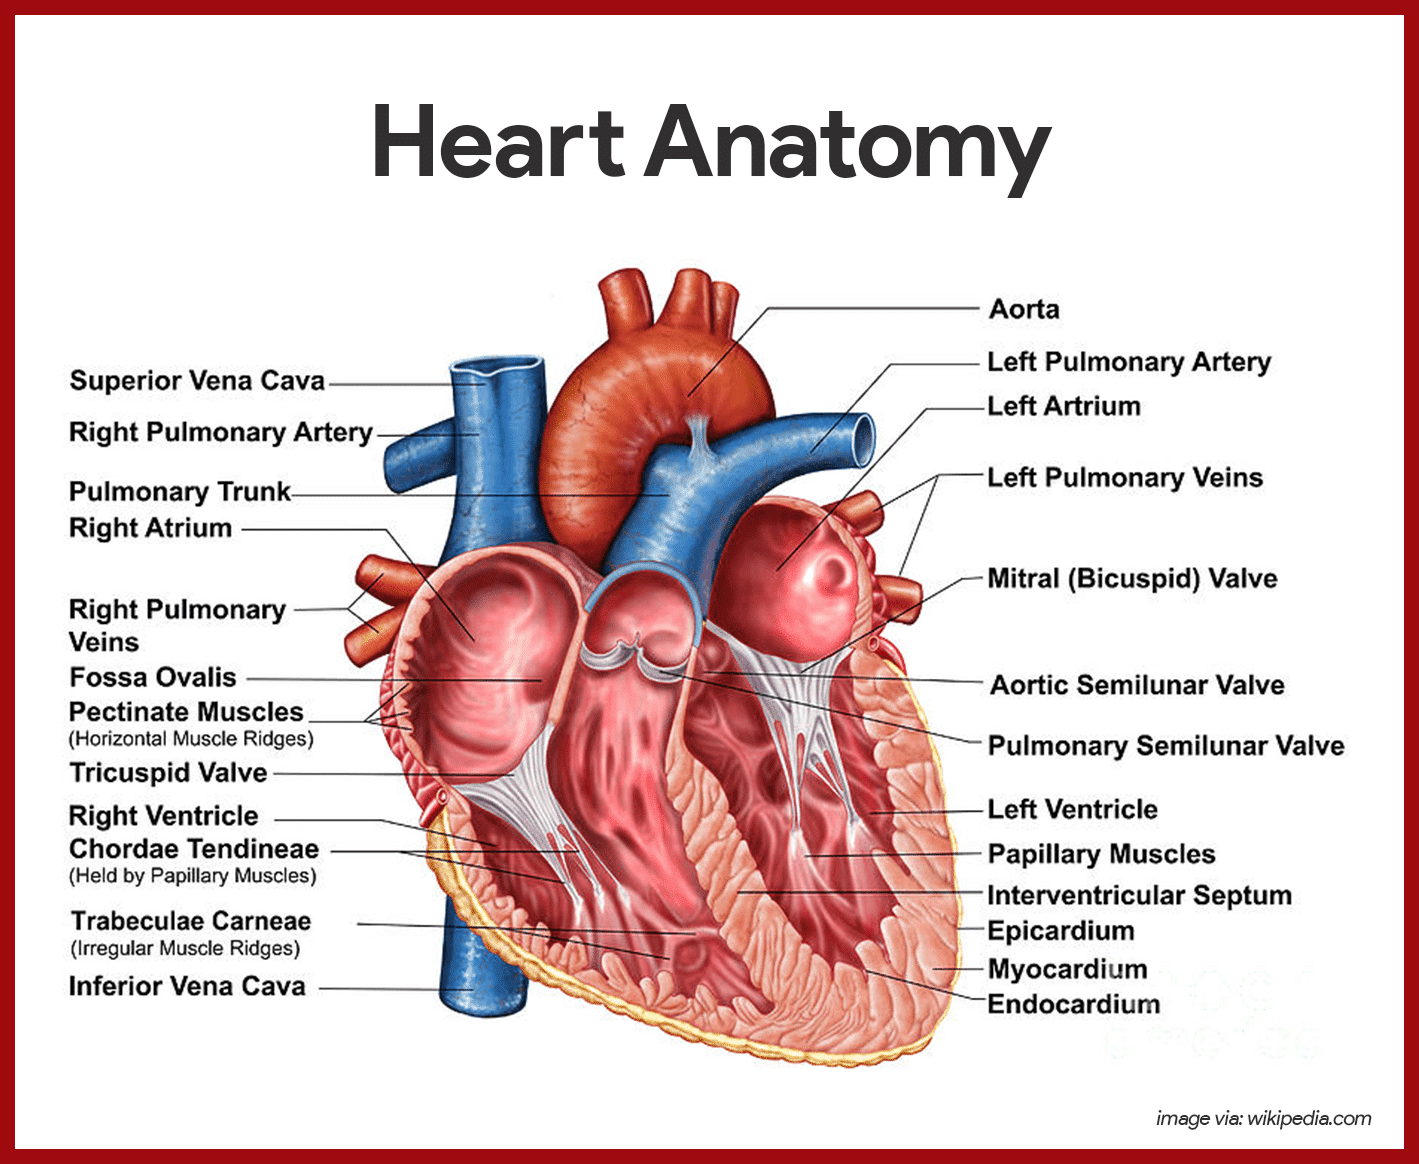 Cardiovascular System Anatomy and Physiology | Heart anatomy, Pa ...